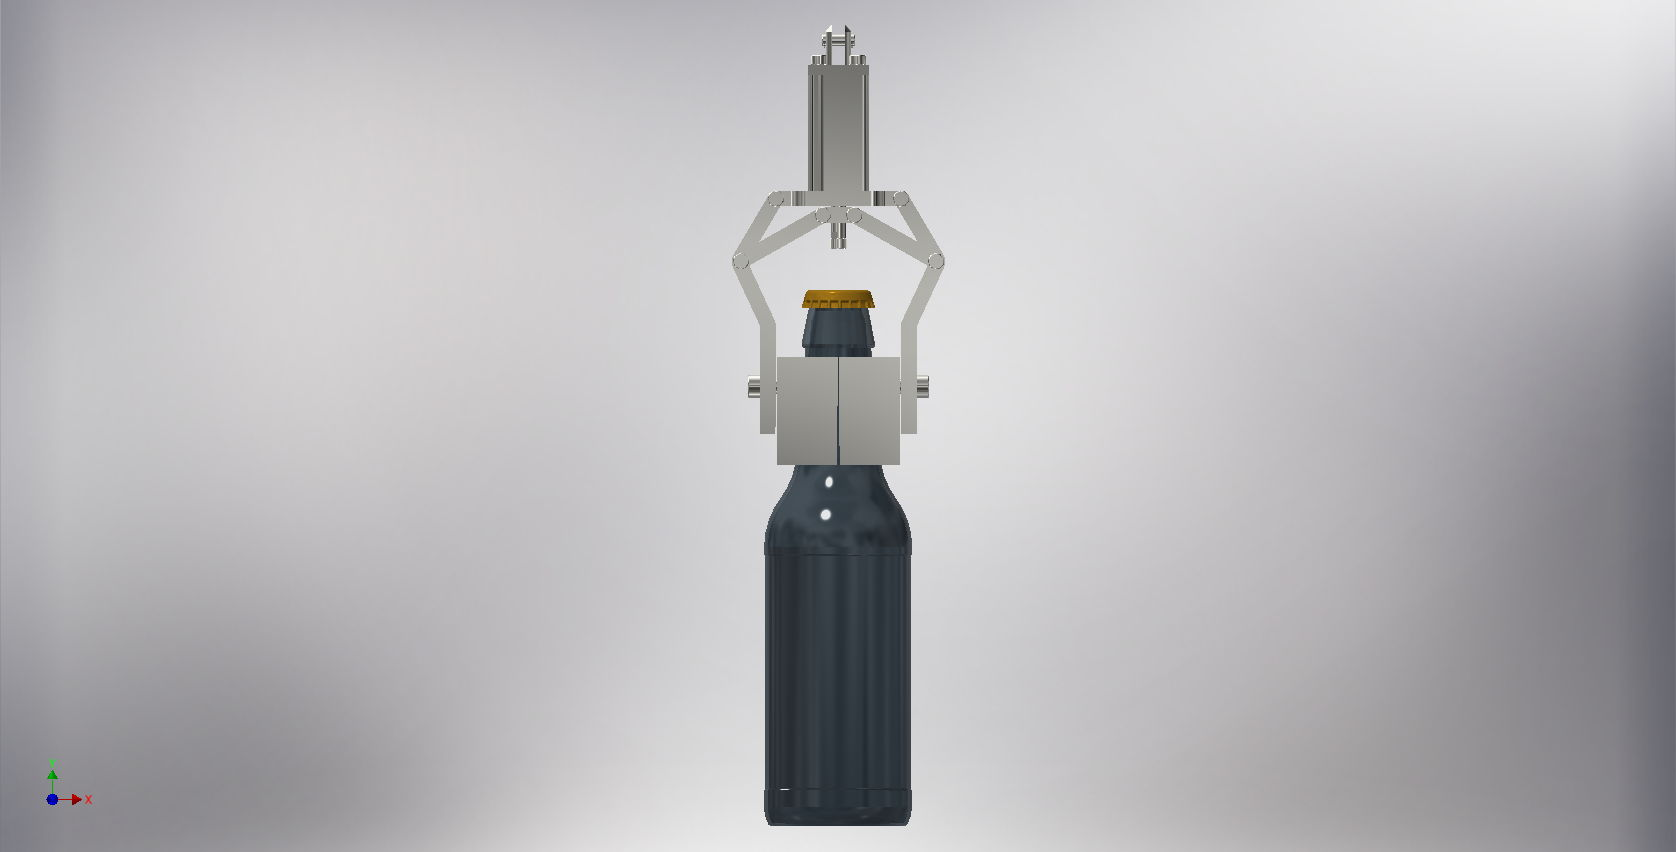 Bottle Packing Machine Design